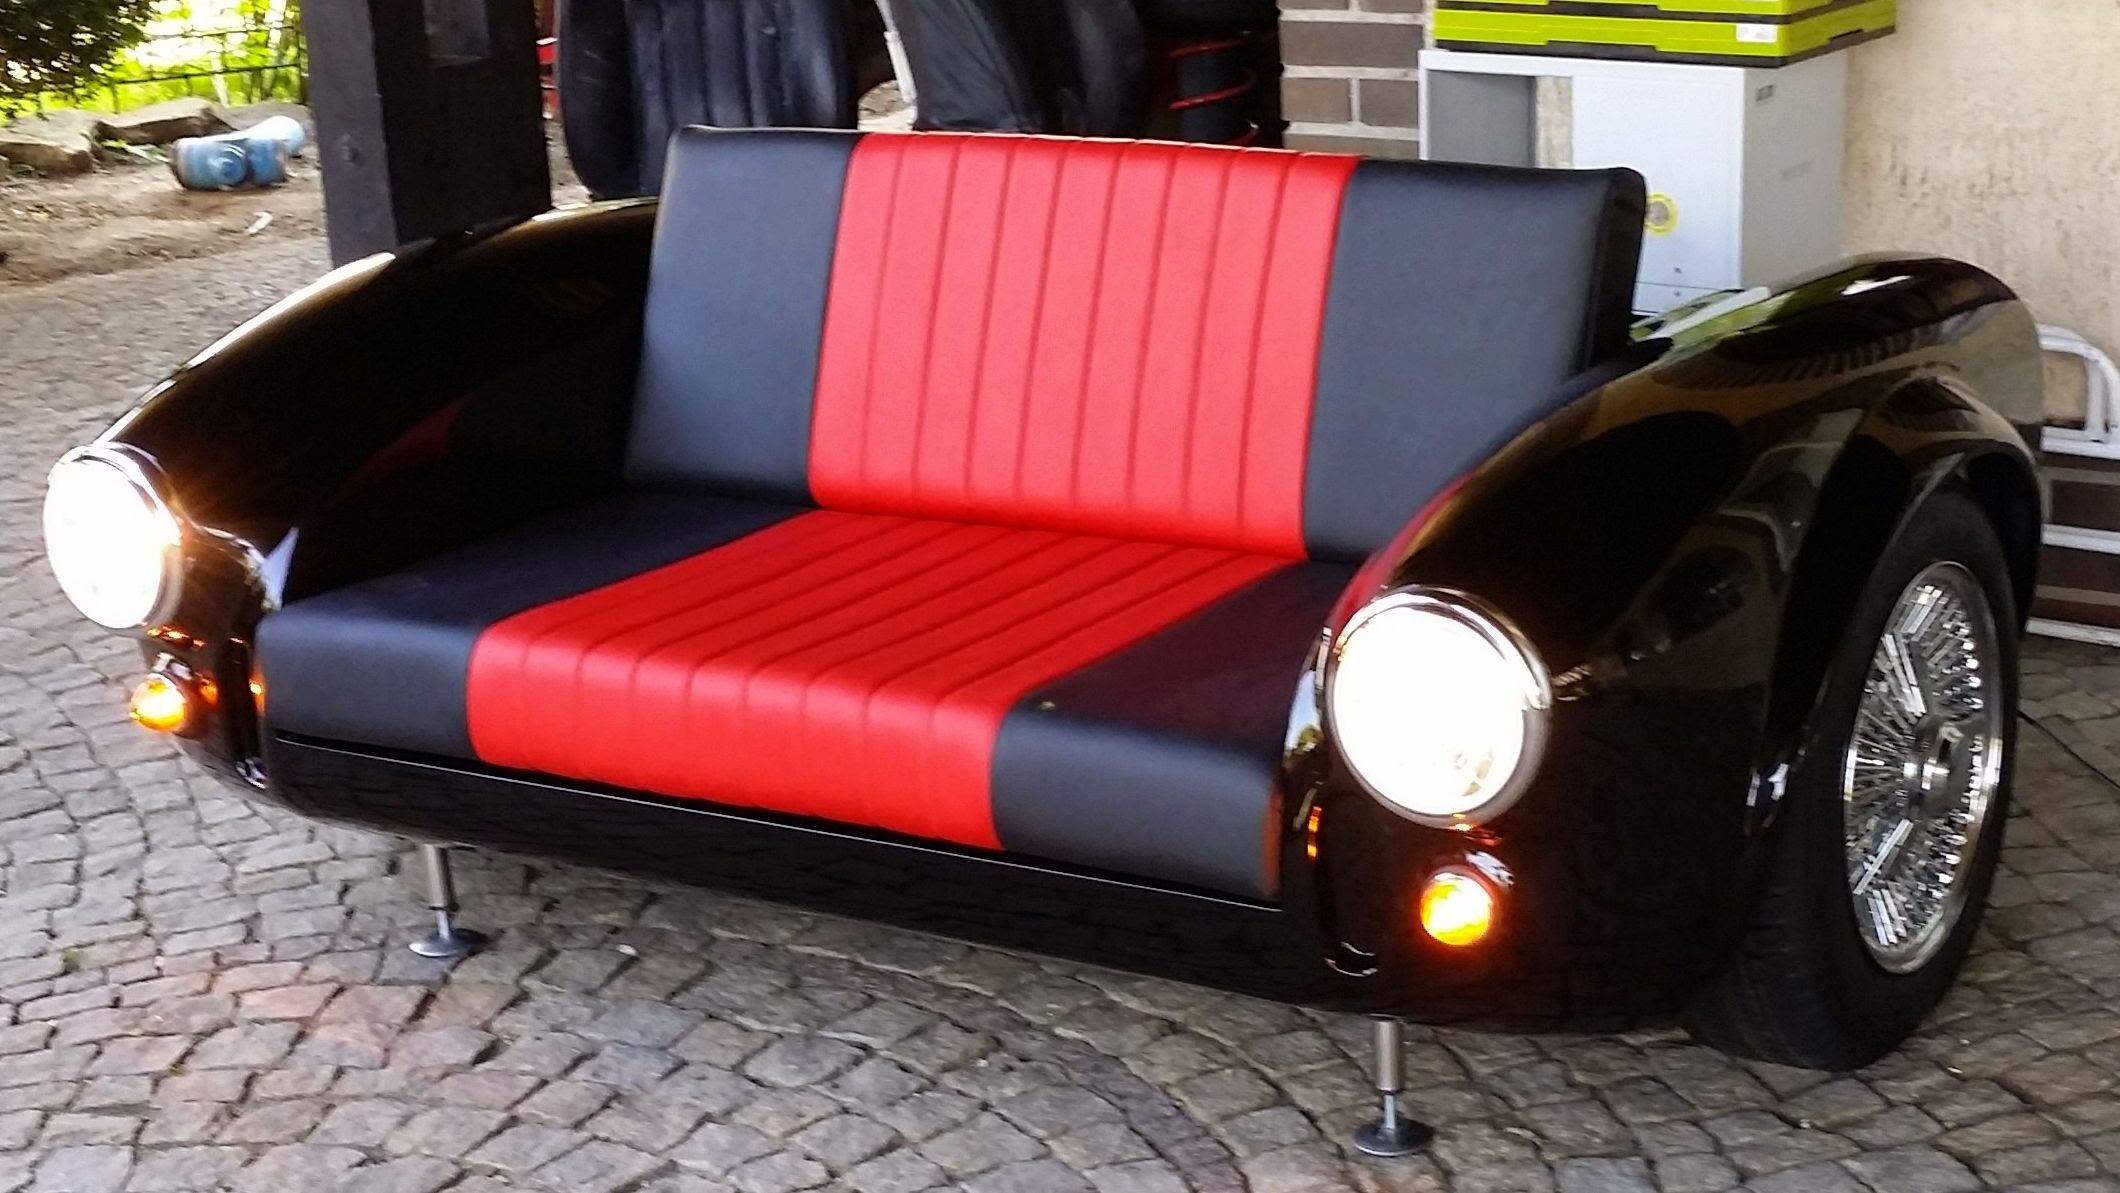 cars sofa chair how to protect leather shelby ac cobra car furniture